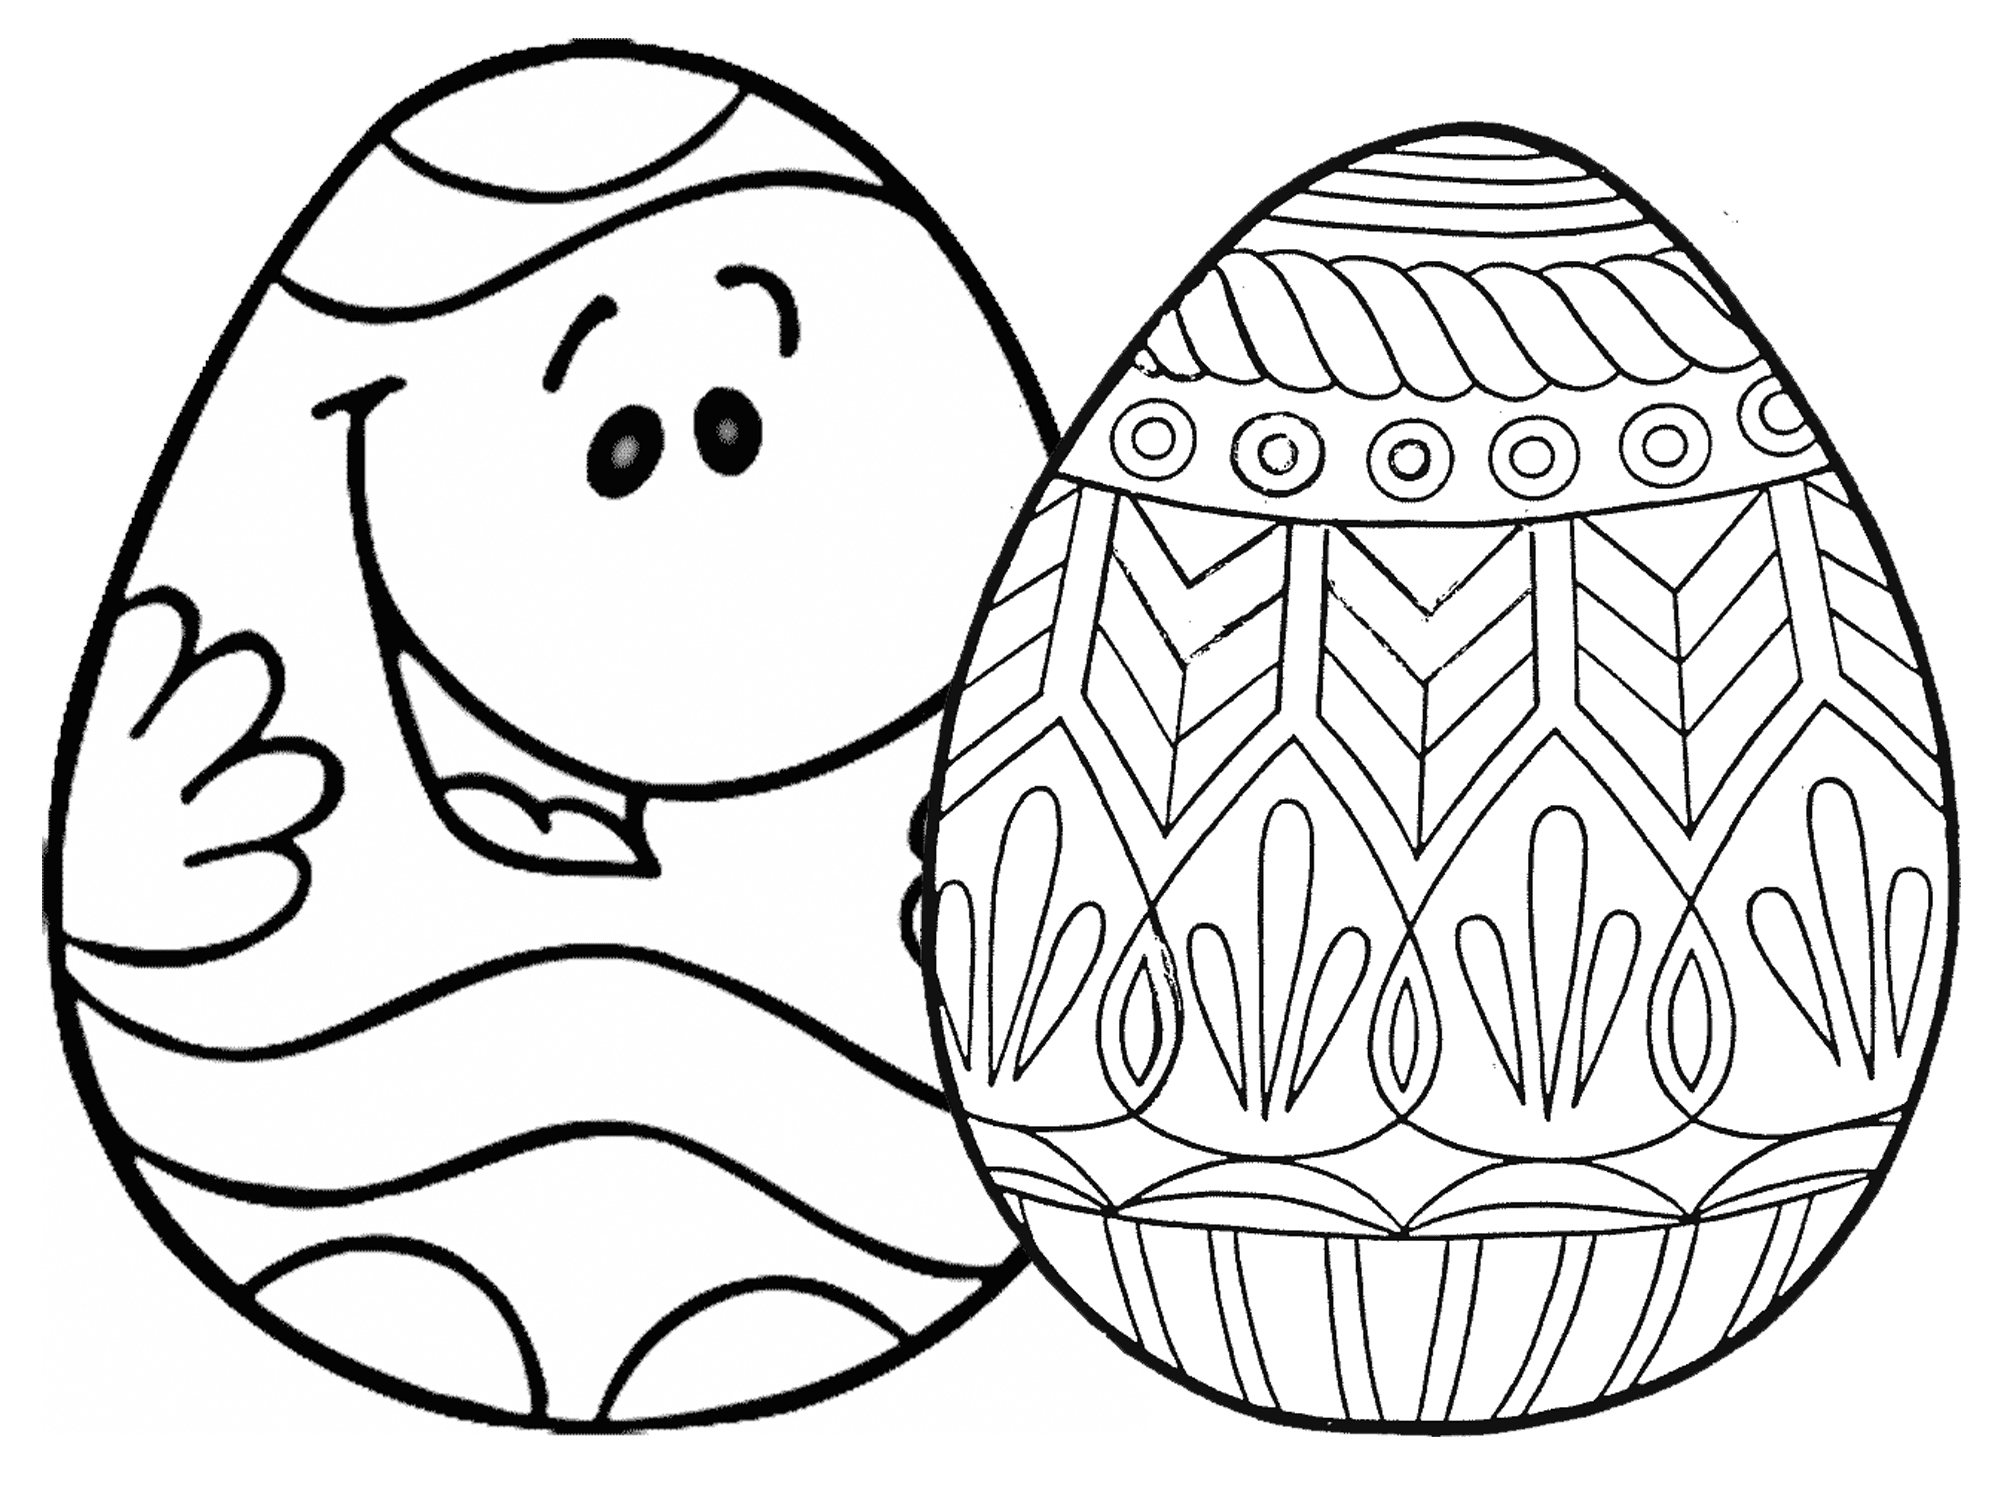 2000x1500 Easter Eggs Coloring Pages